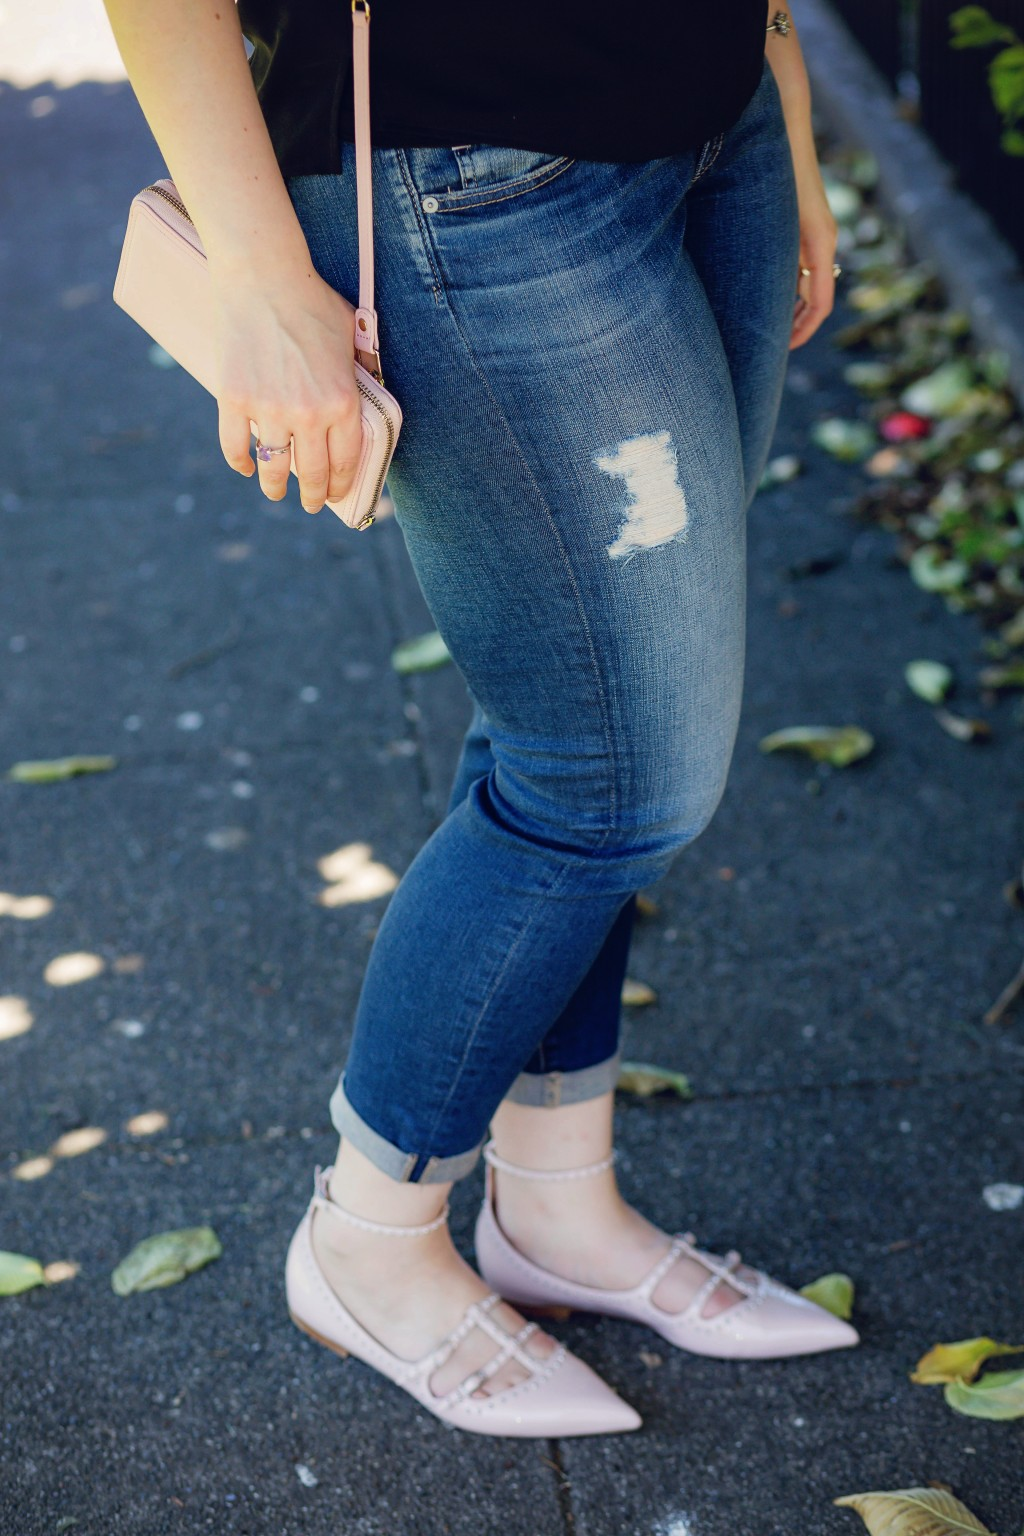 9 - Distressed jeans